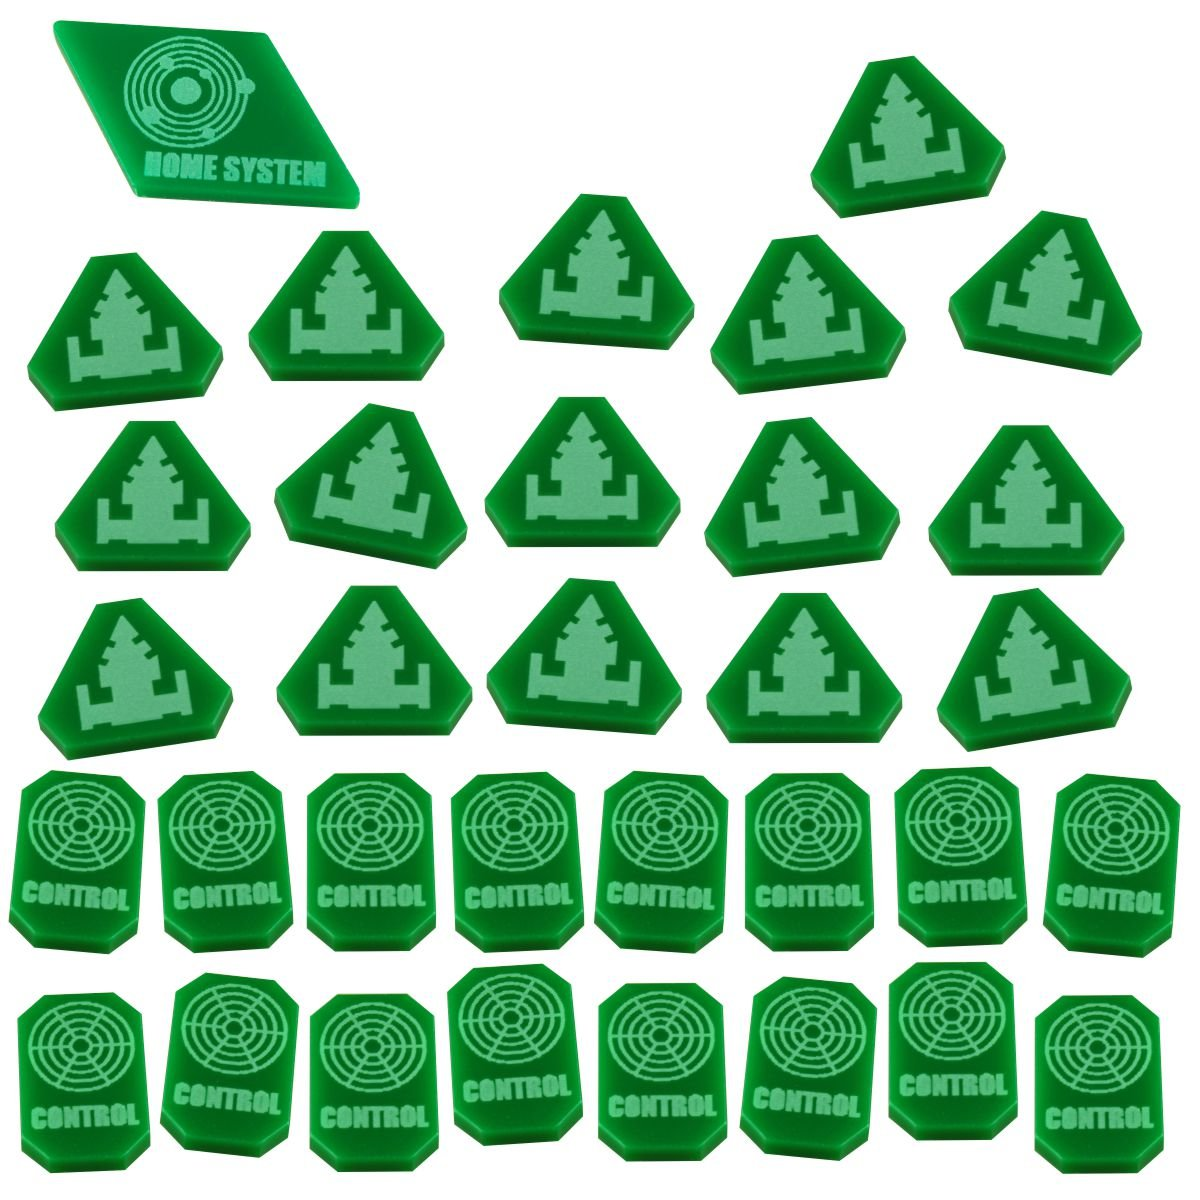 LITKO TI4: Command & Control Token Set, Green (33) by LITKO